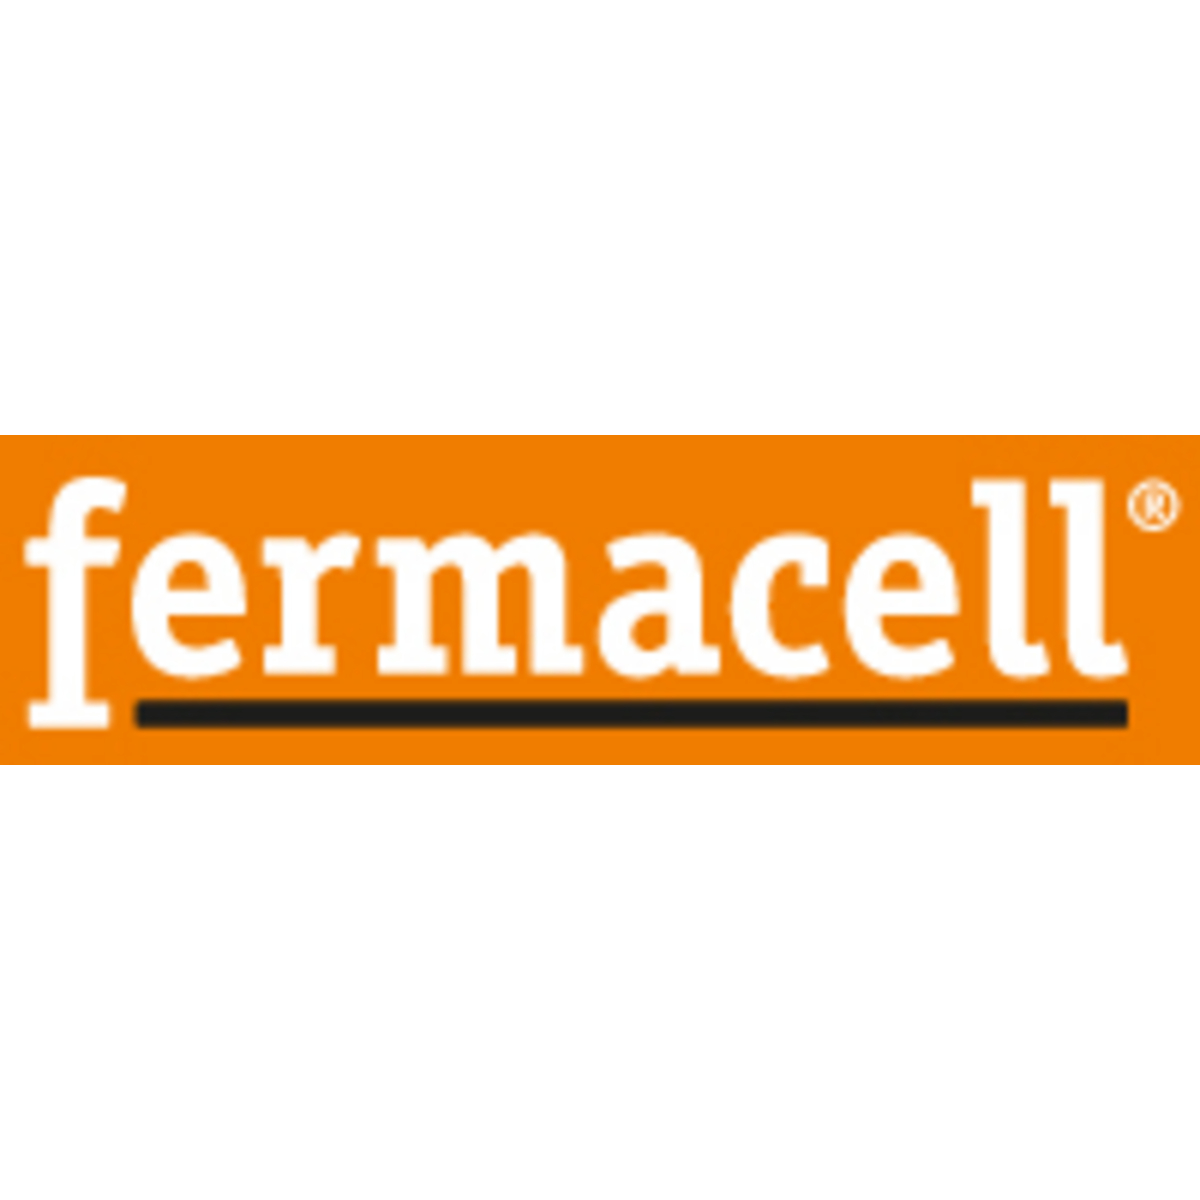 Fermacell